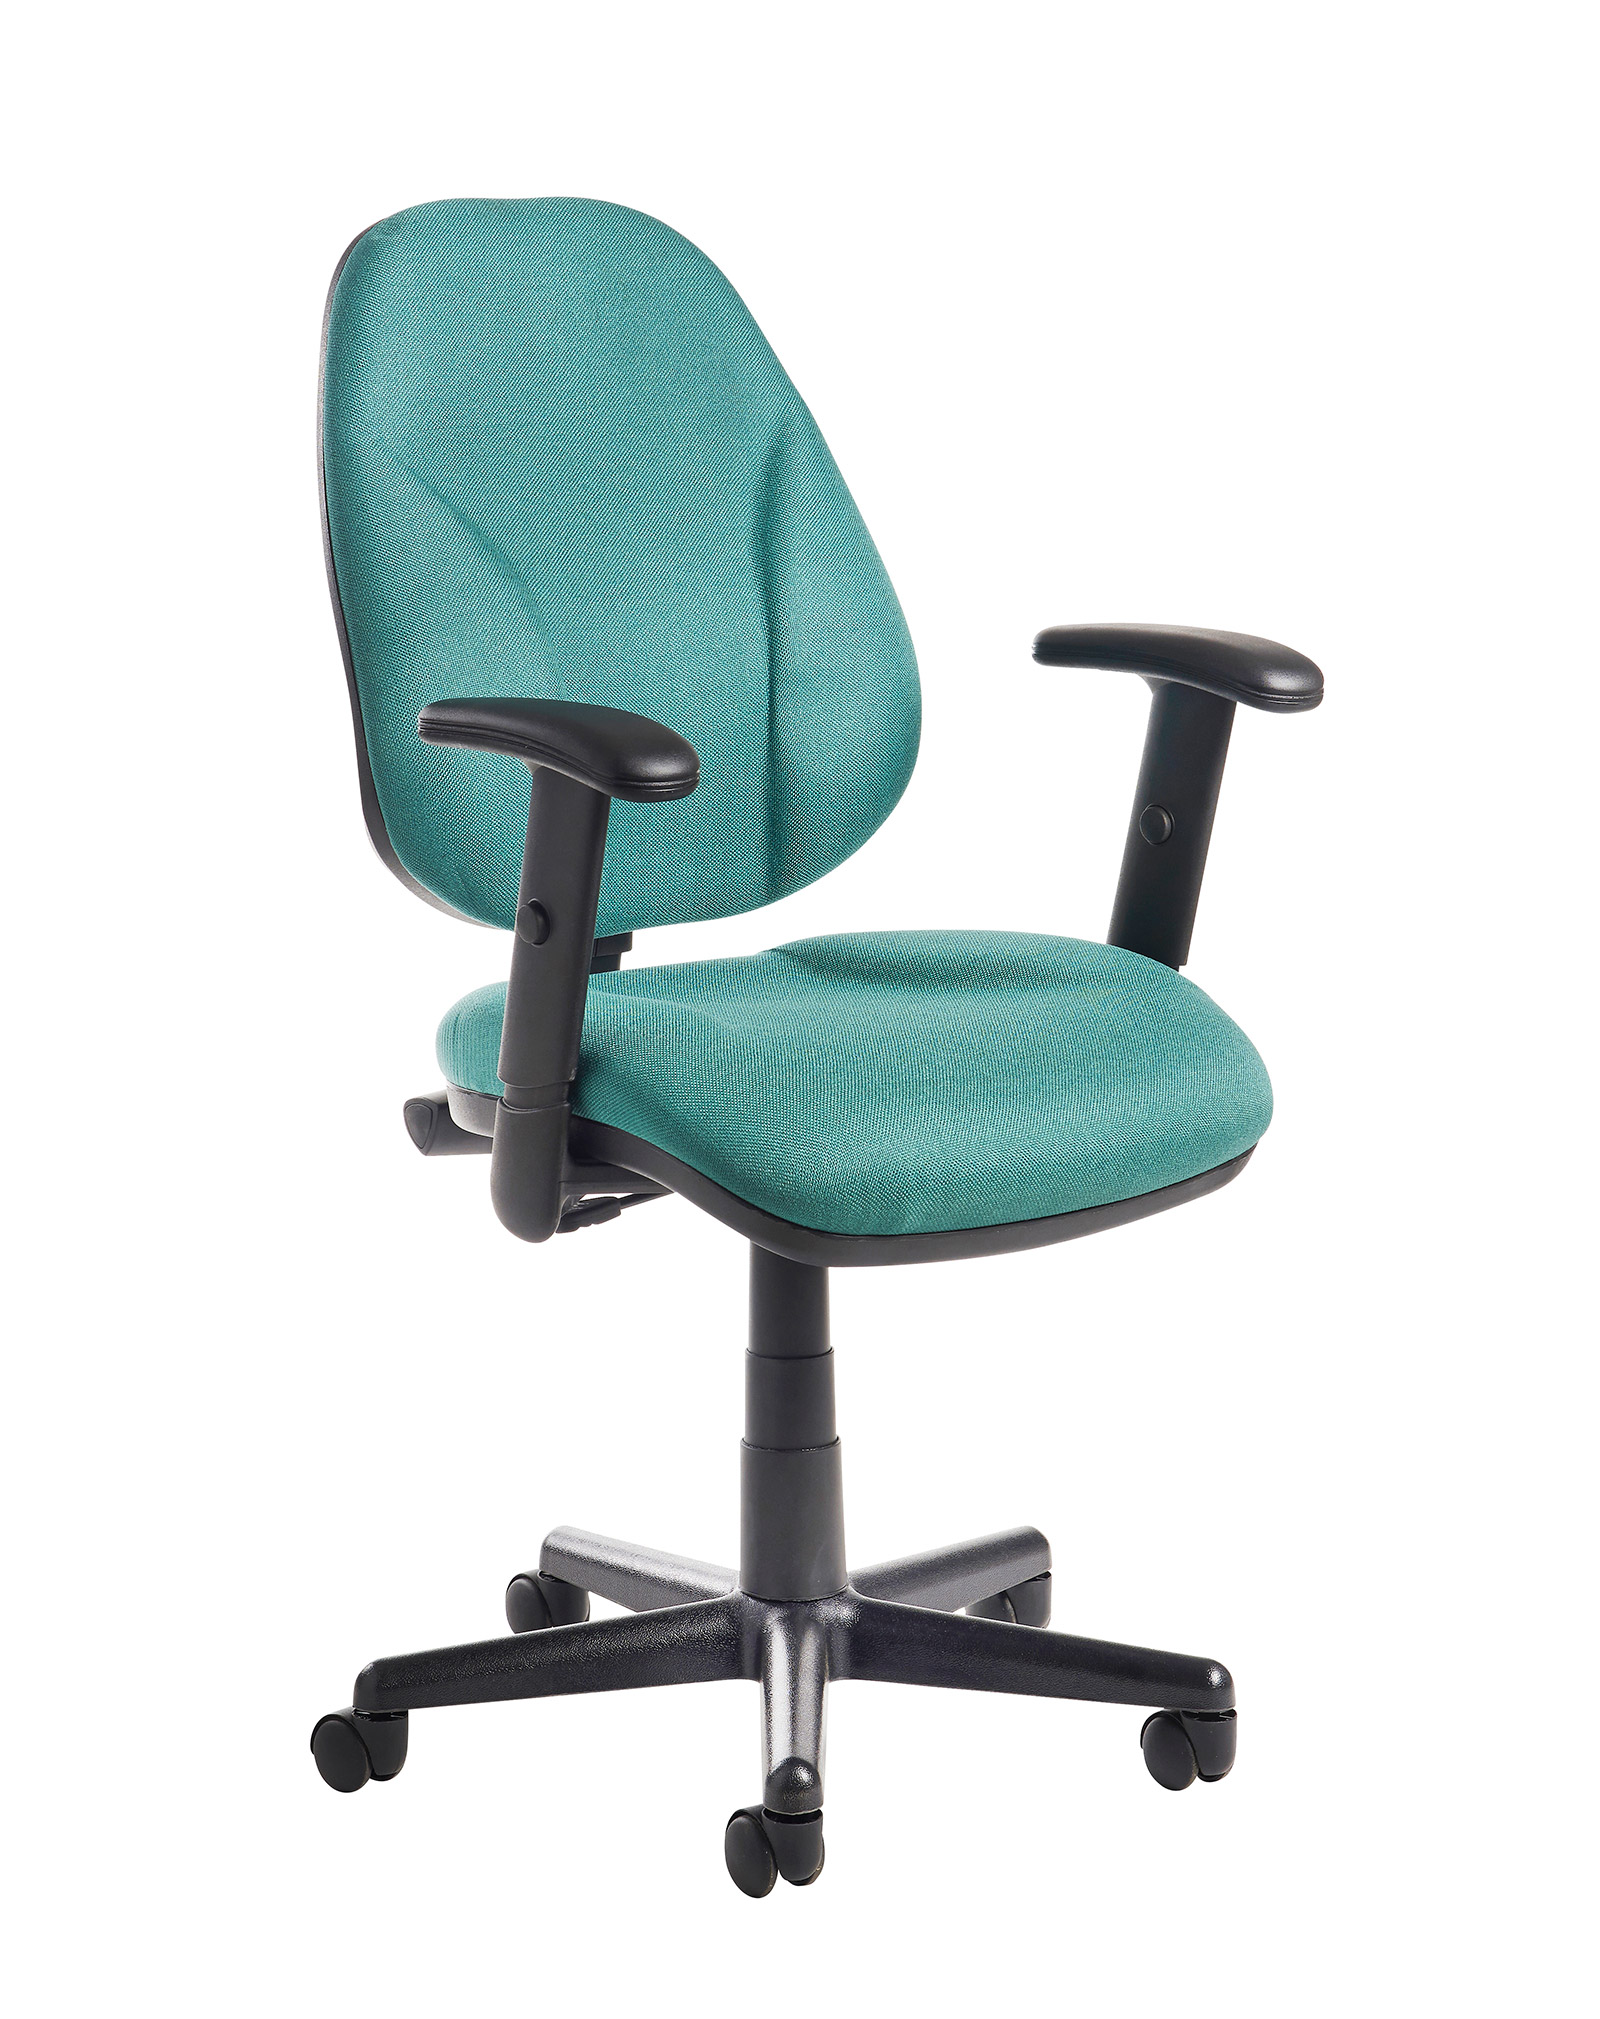 Bilbao fabric operators chair with lumbar support and adjustable arms - green